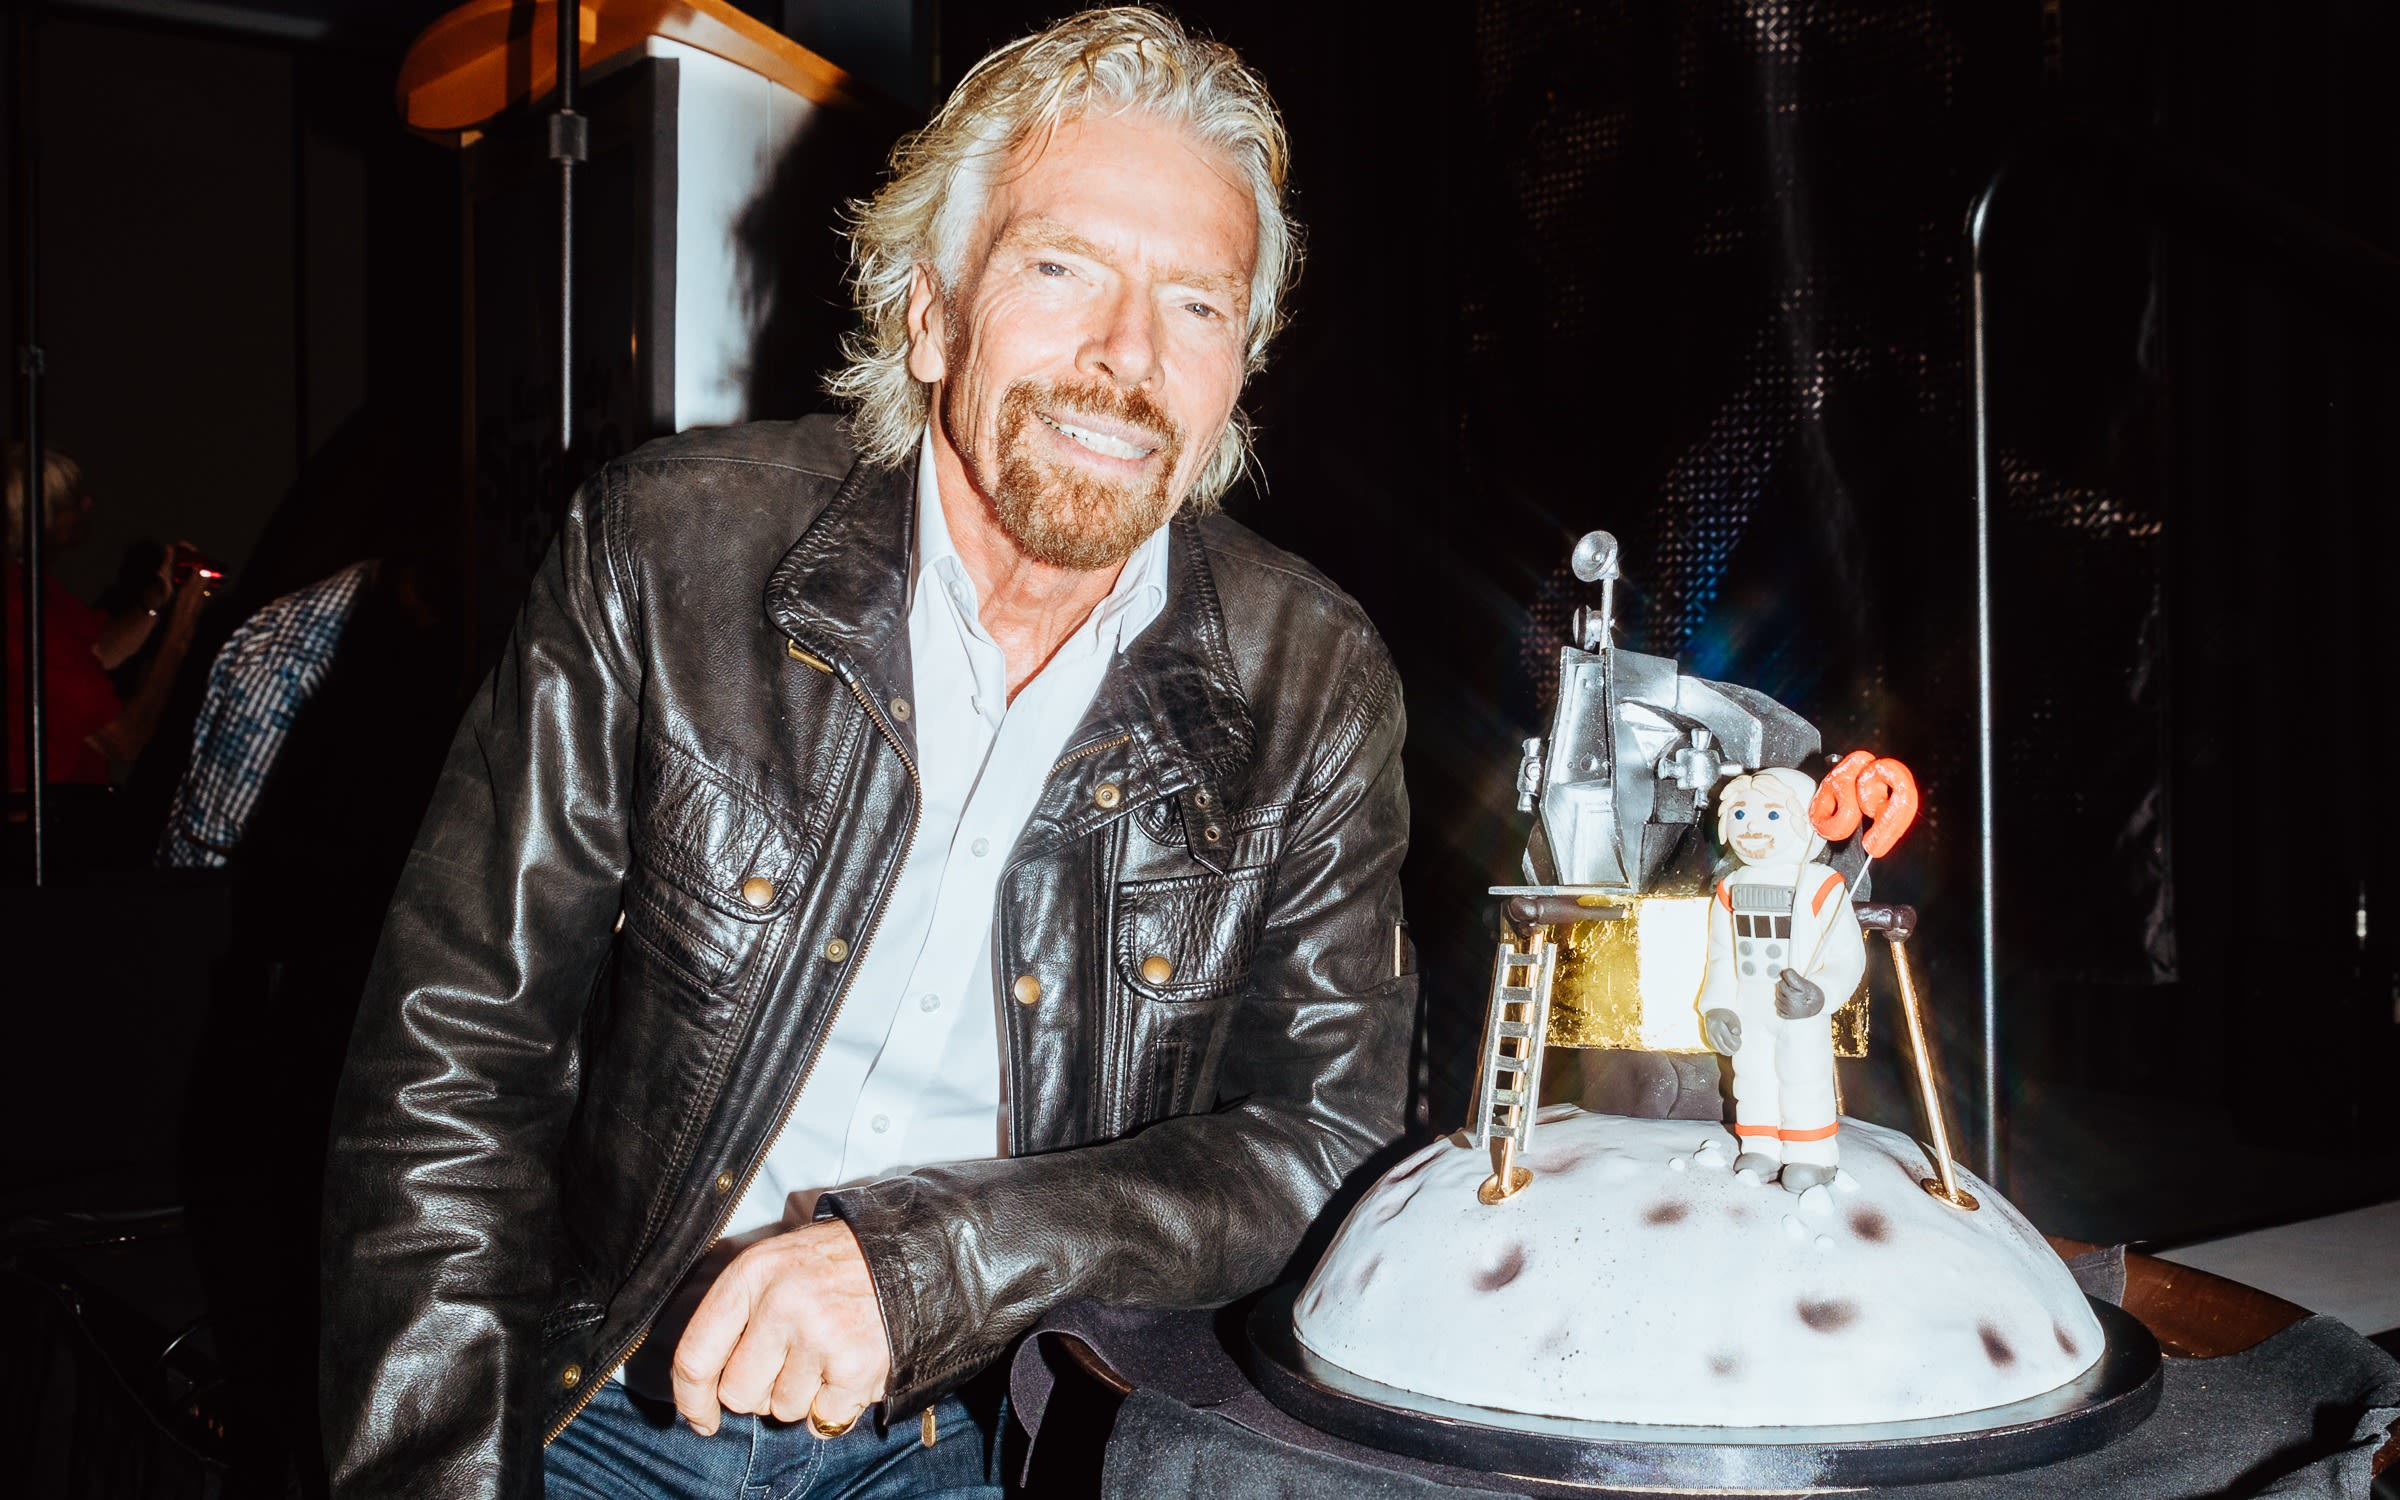 Richard Branson with his Virgin Galactic birthday cake for his 69th birthday